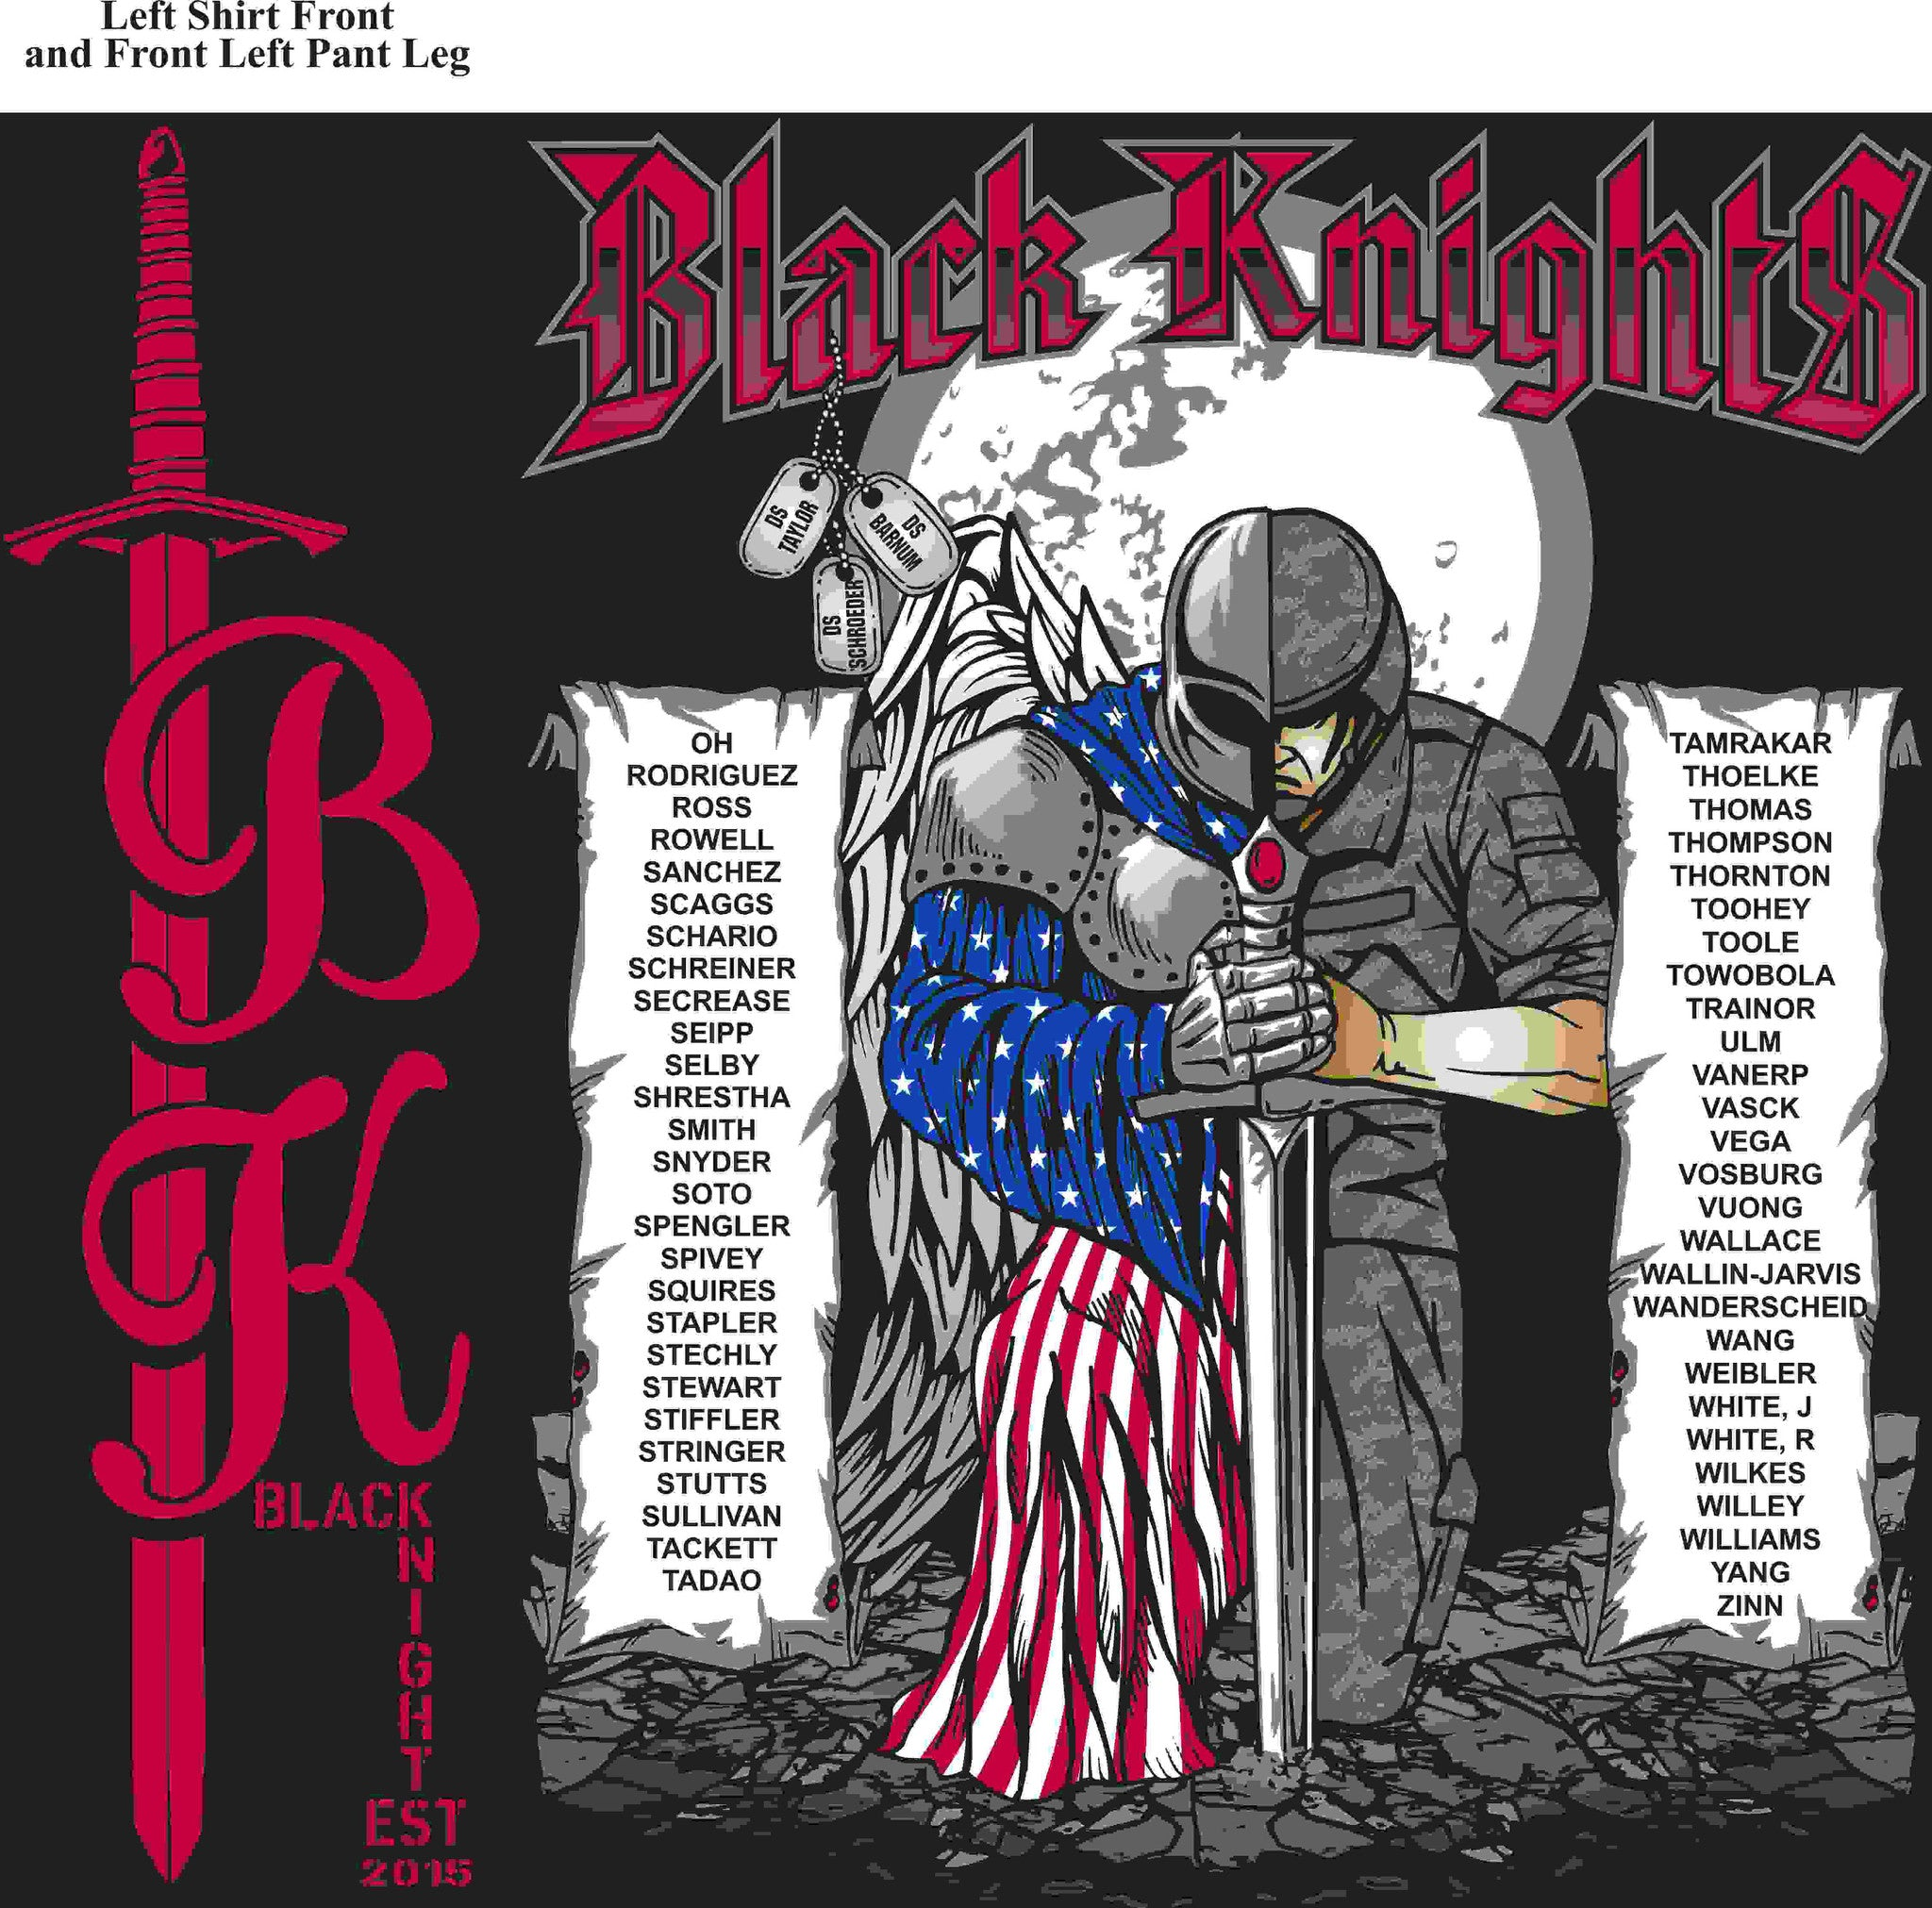 PLATOON SHIRTS (digital) CHARLIE 1st 79th BLACK KNIGHTS JAN 2016